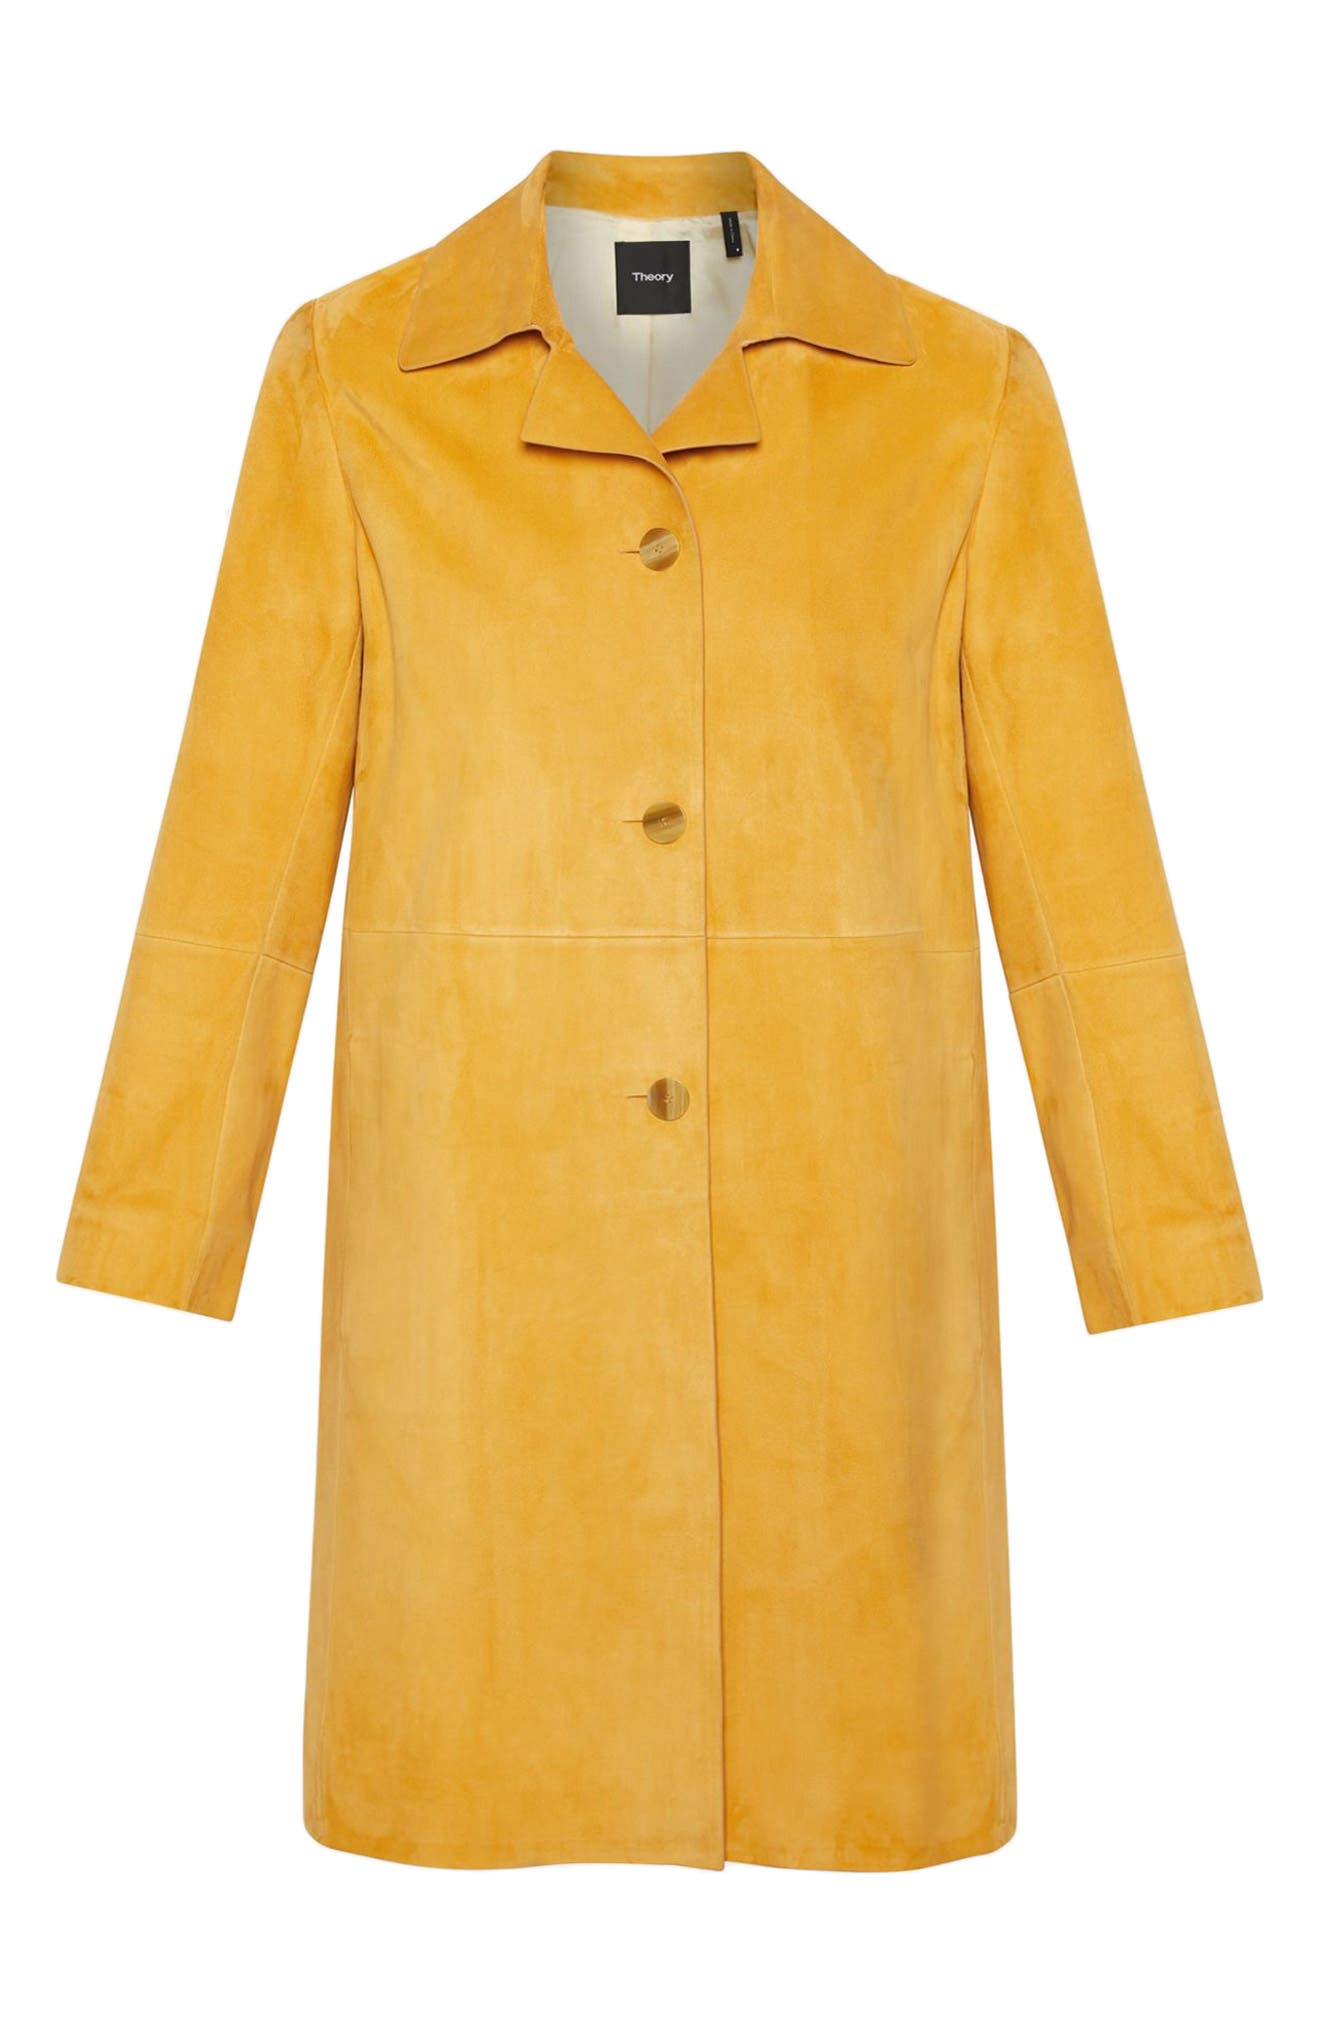 THEORY,                             Piazza Leather Coat,                             Alternate thumbnail 4, color,                             ZEST